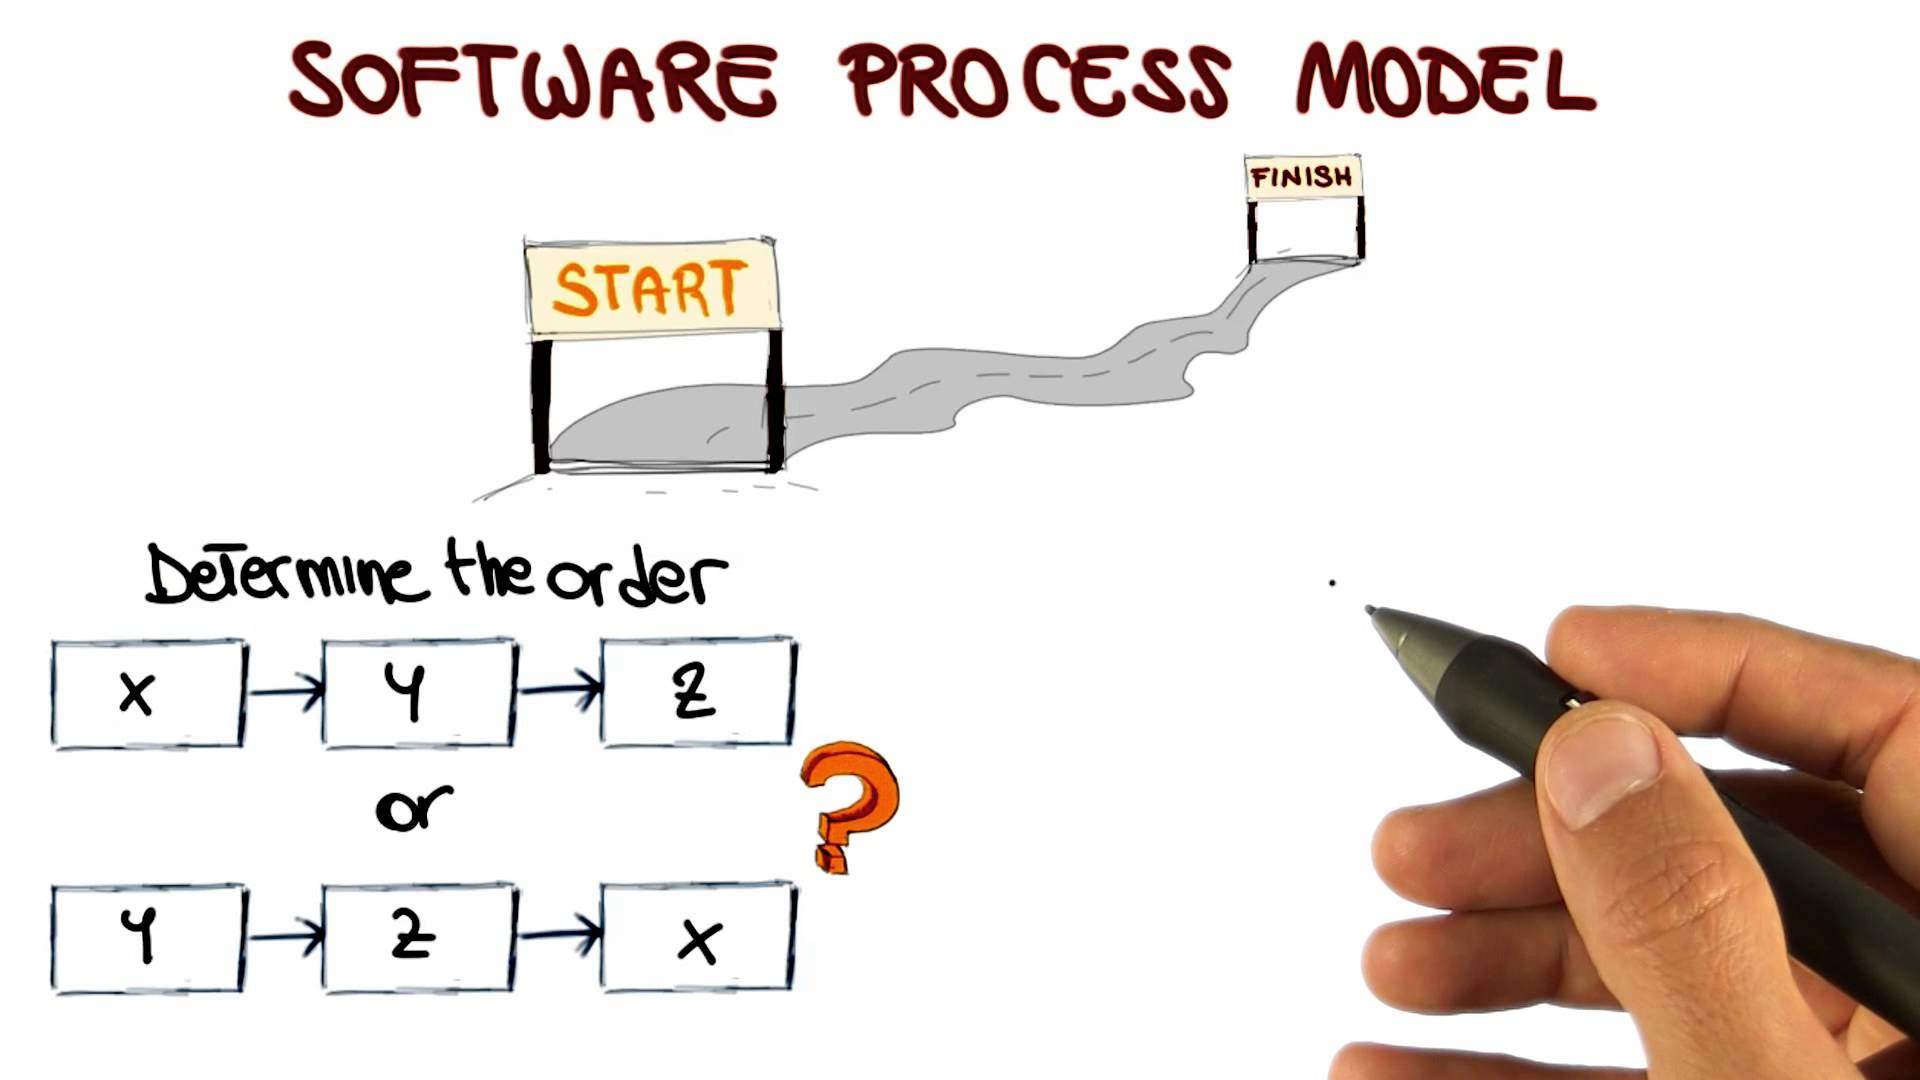 Process Model VS Process Simulation: What's the Difference?